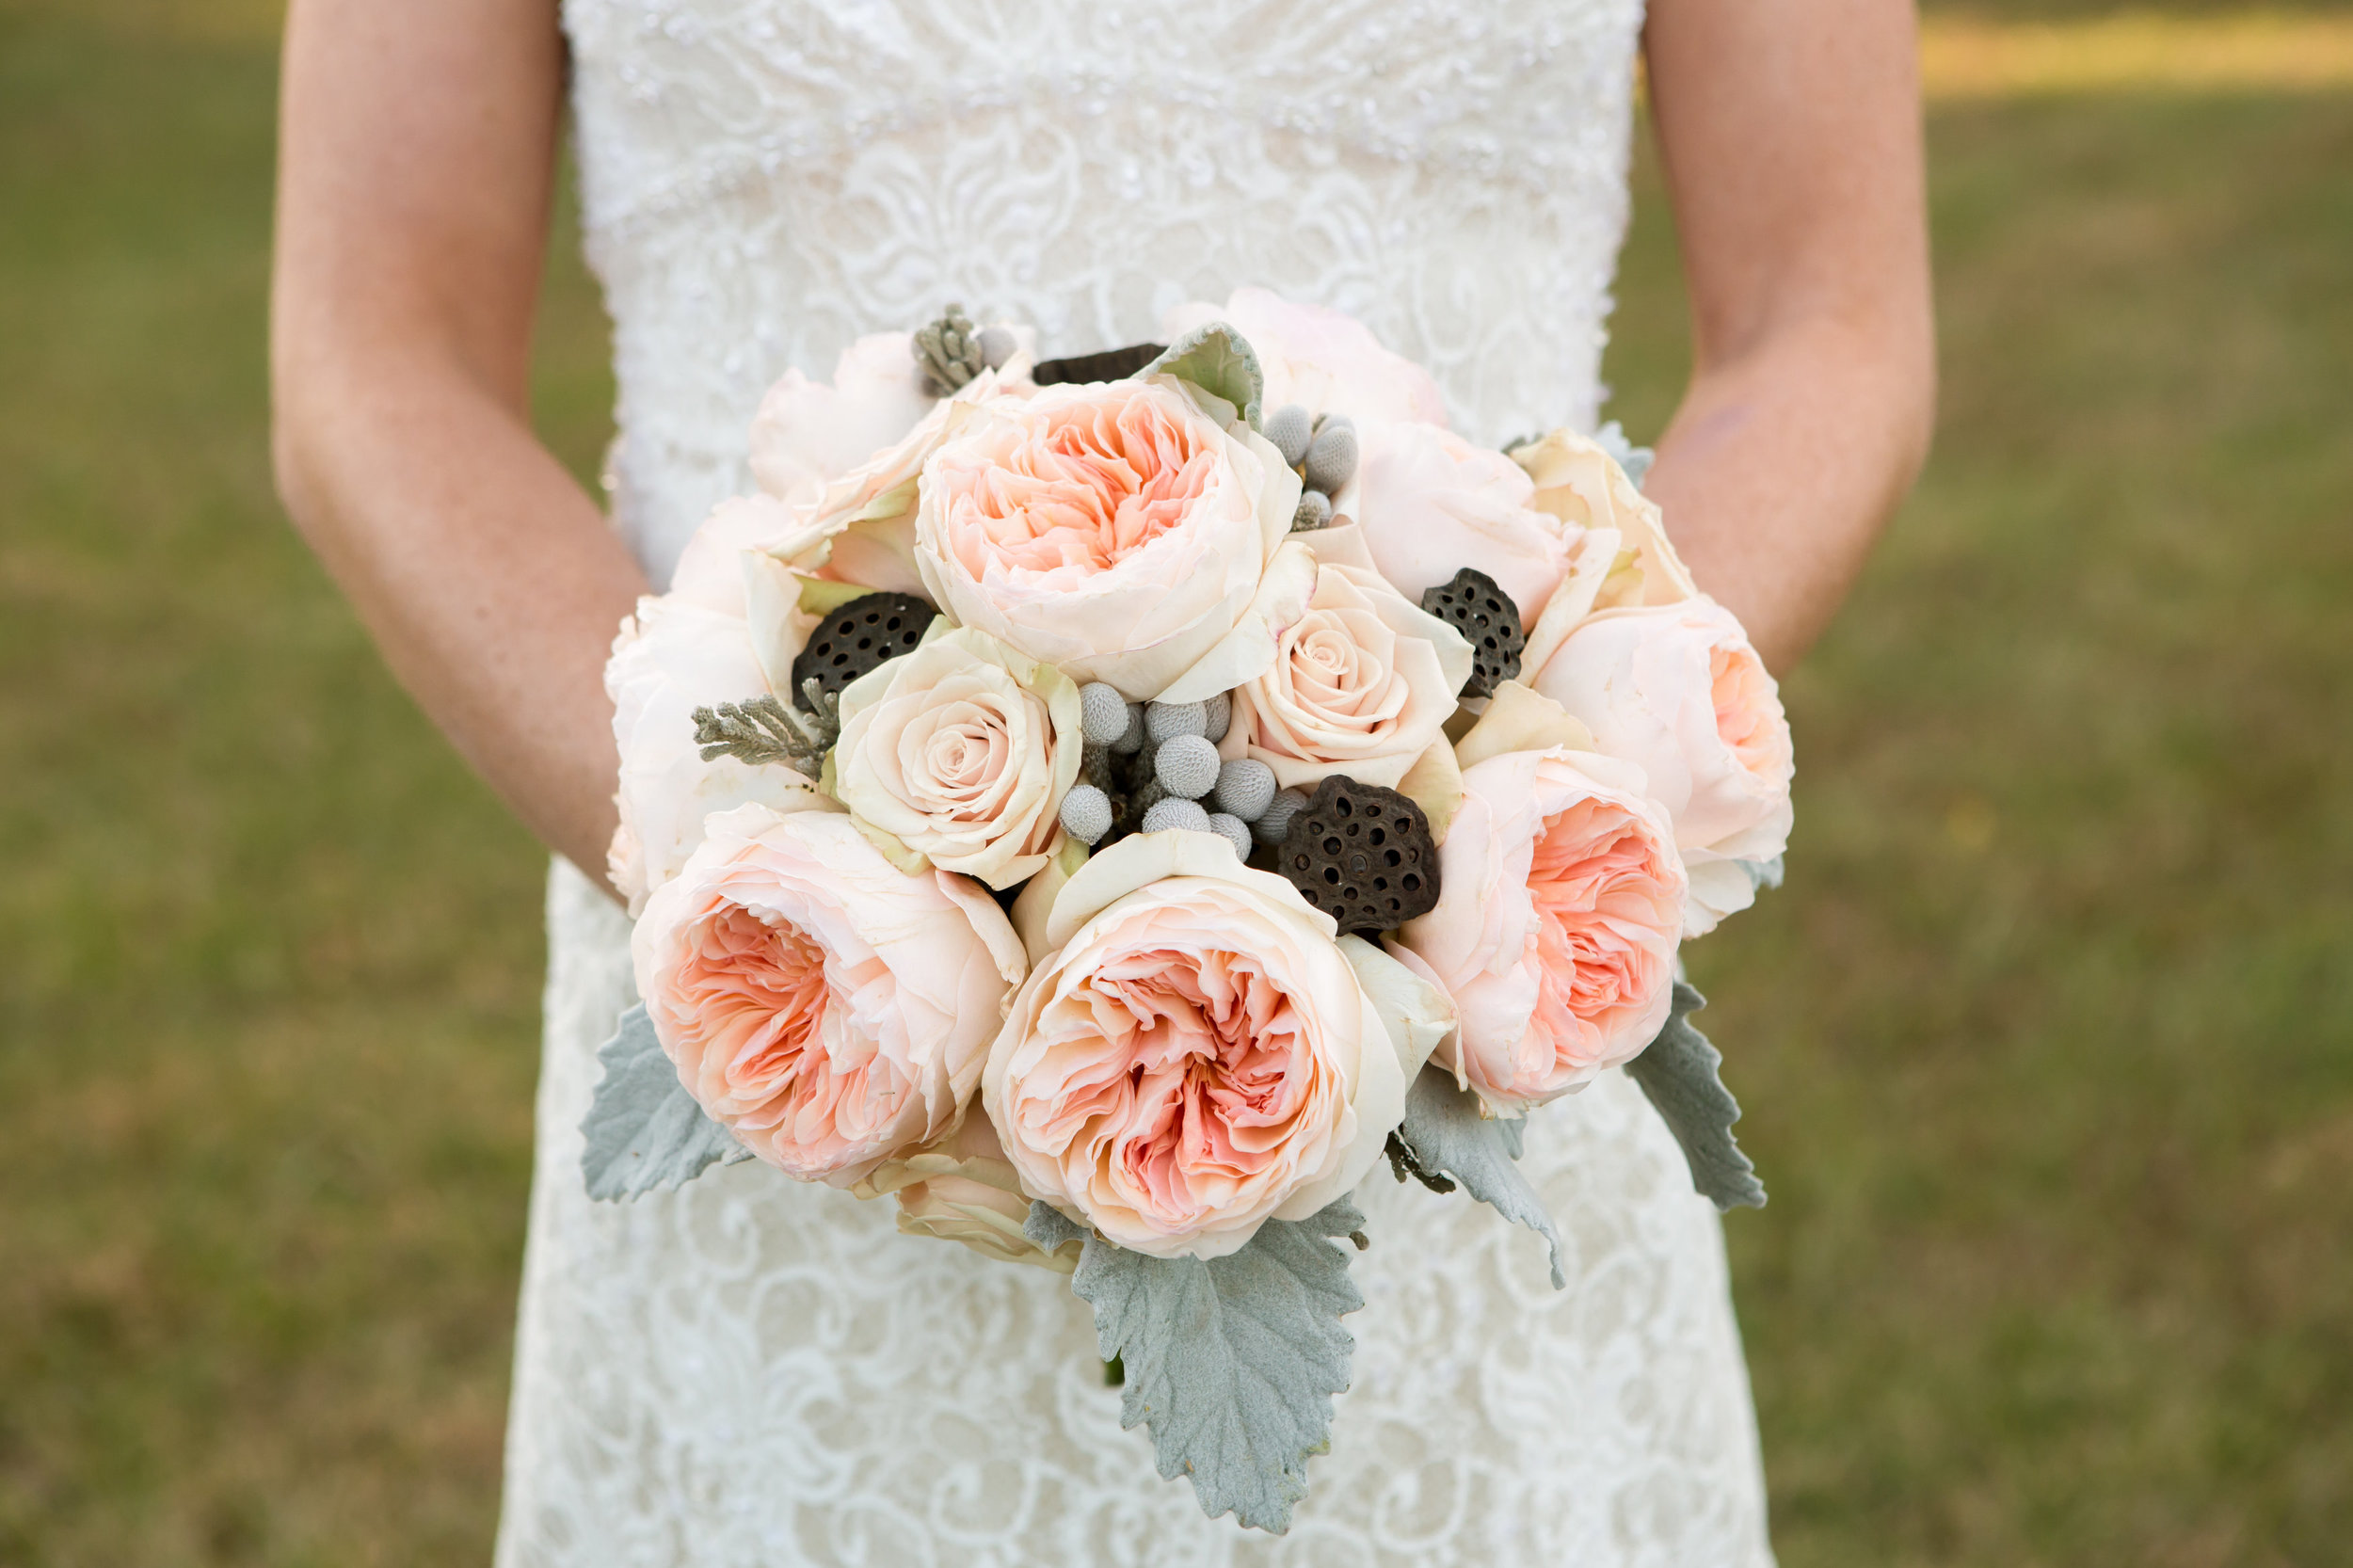 Garden roses, Sahara roses, dusty miller and lotus pods were carried by our bride at Cedar Lake Cellars.